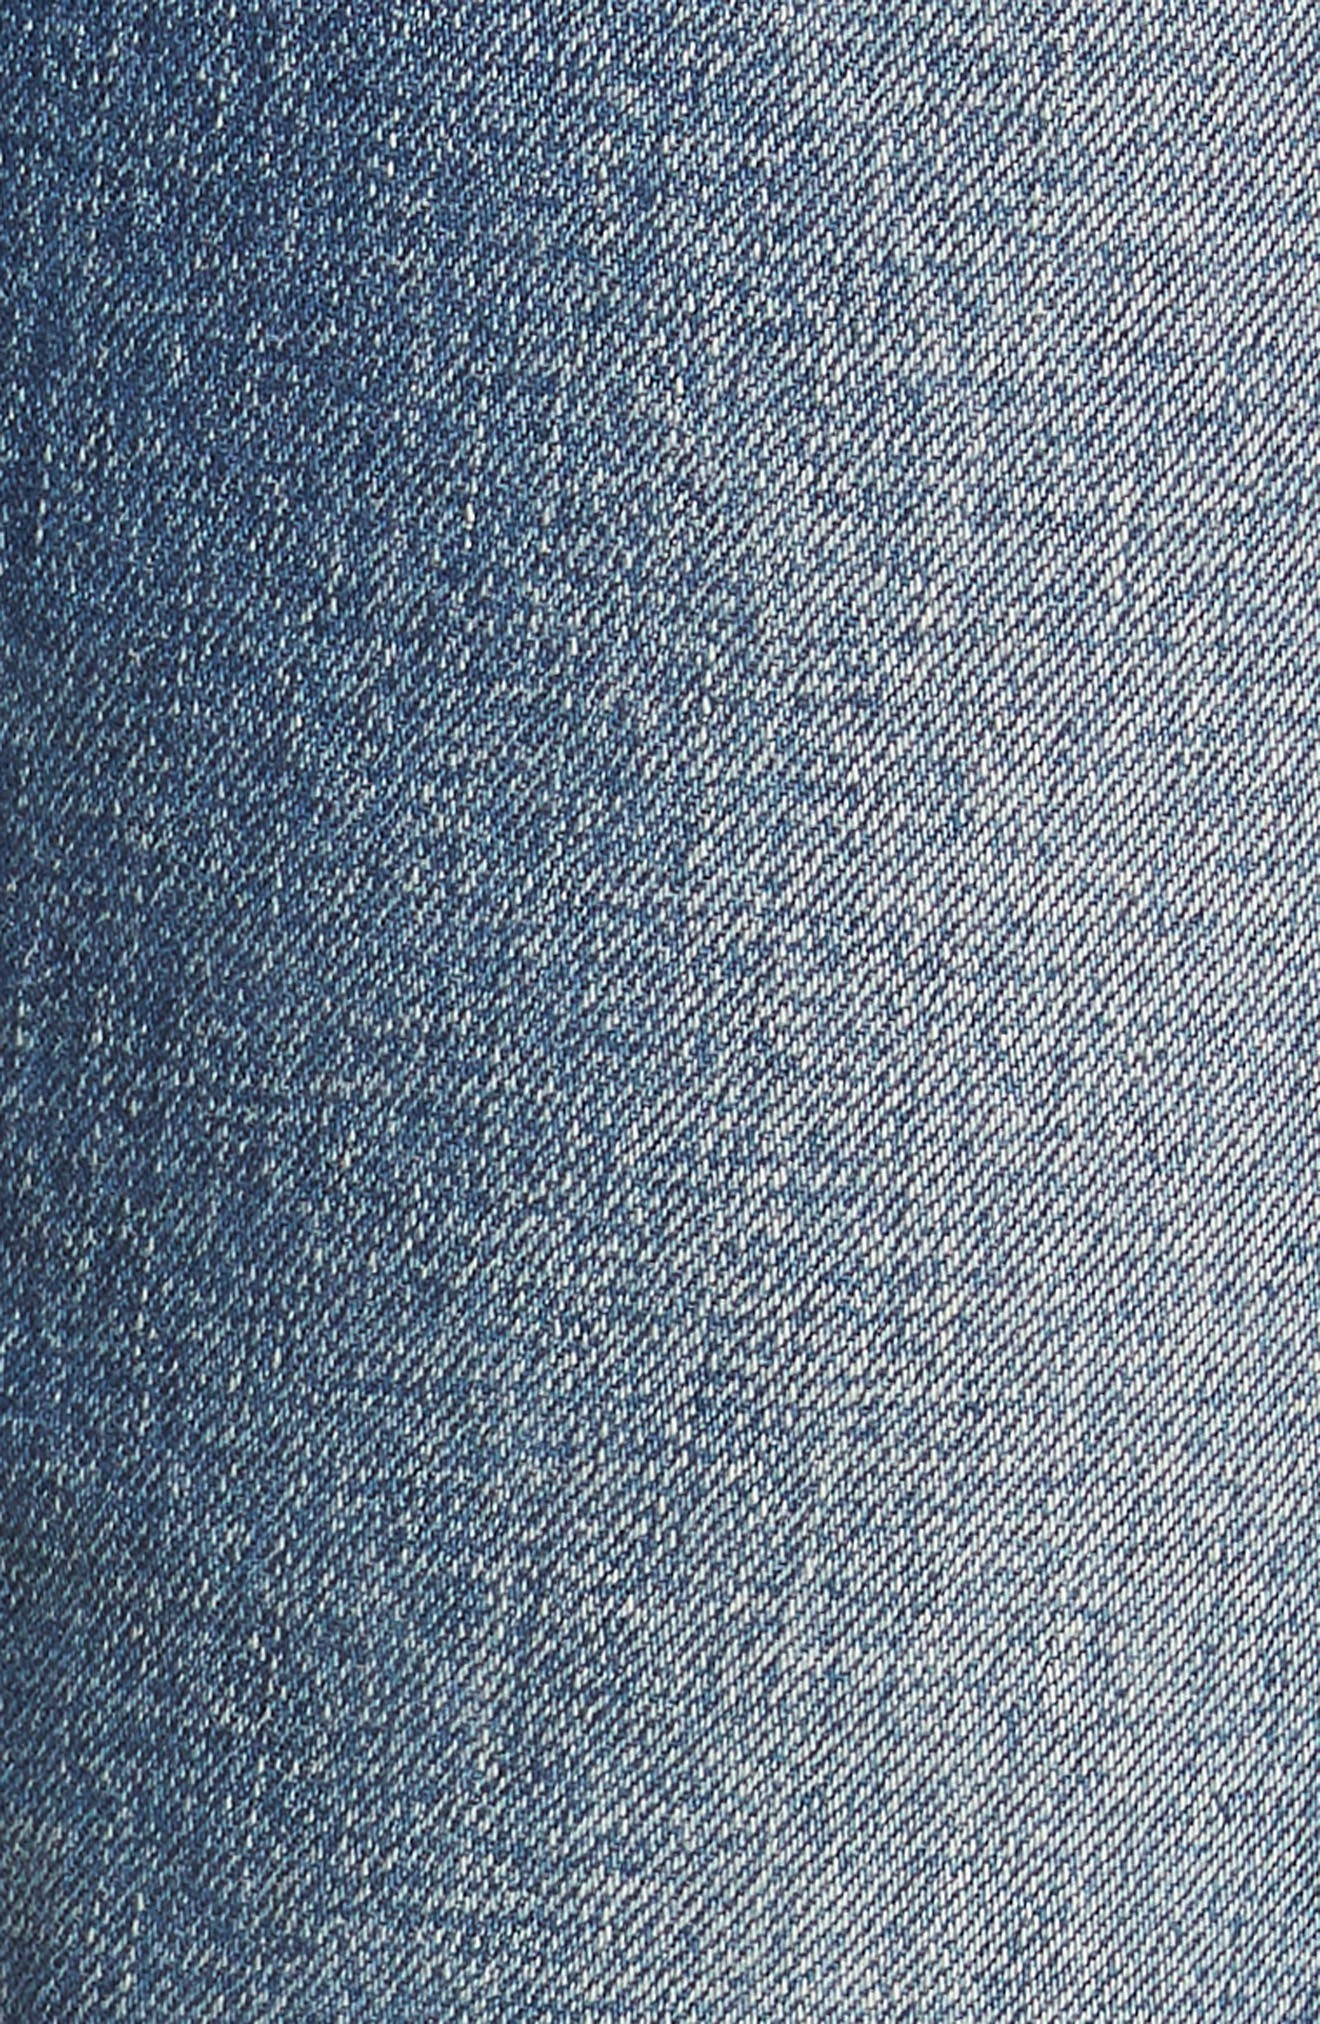 Vintage Icon Ankle Skinny Jeans,                             Alternate thumbnail 6, color,                             Bailee